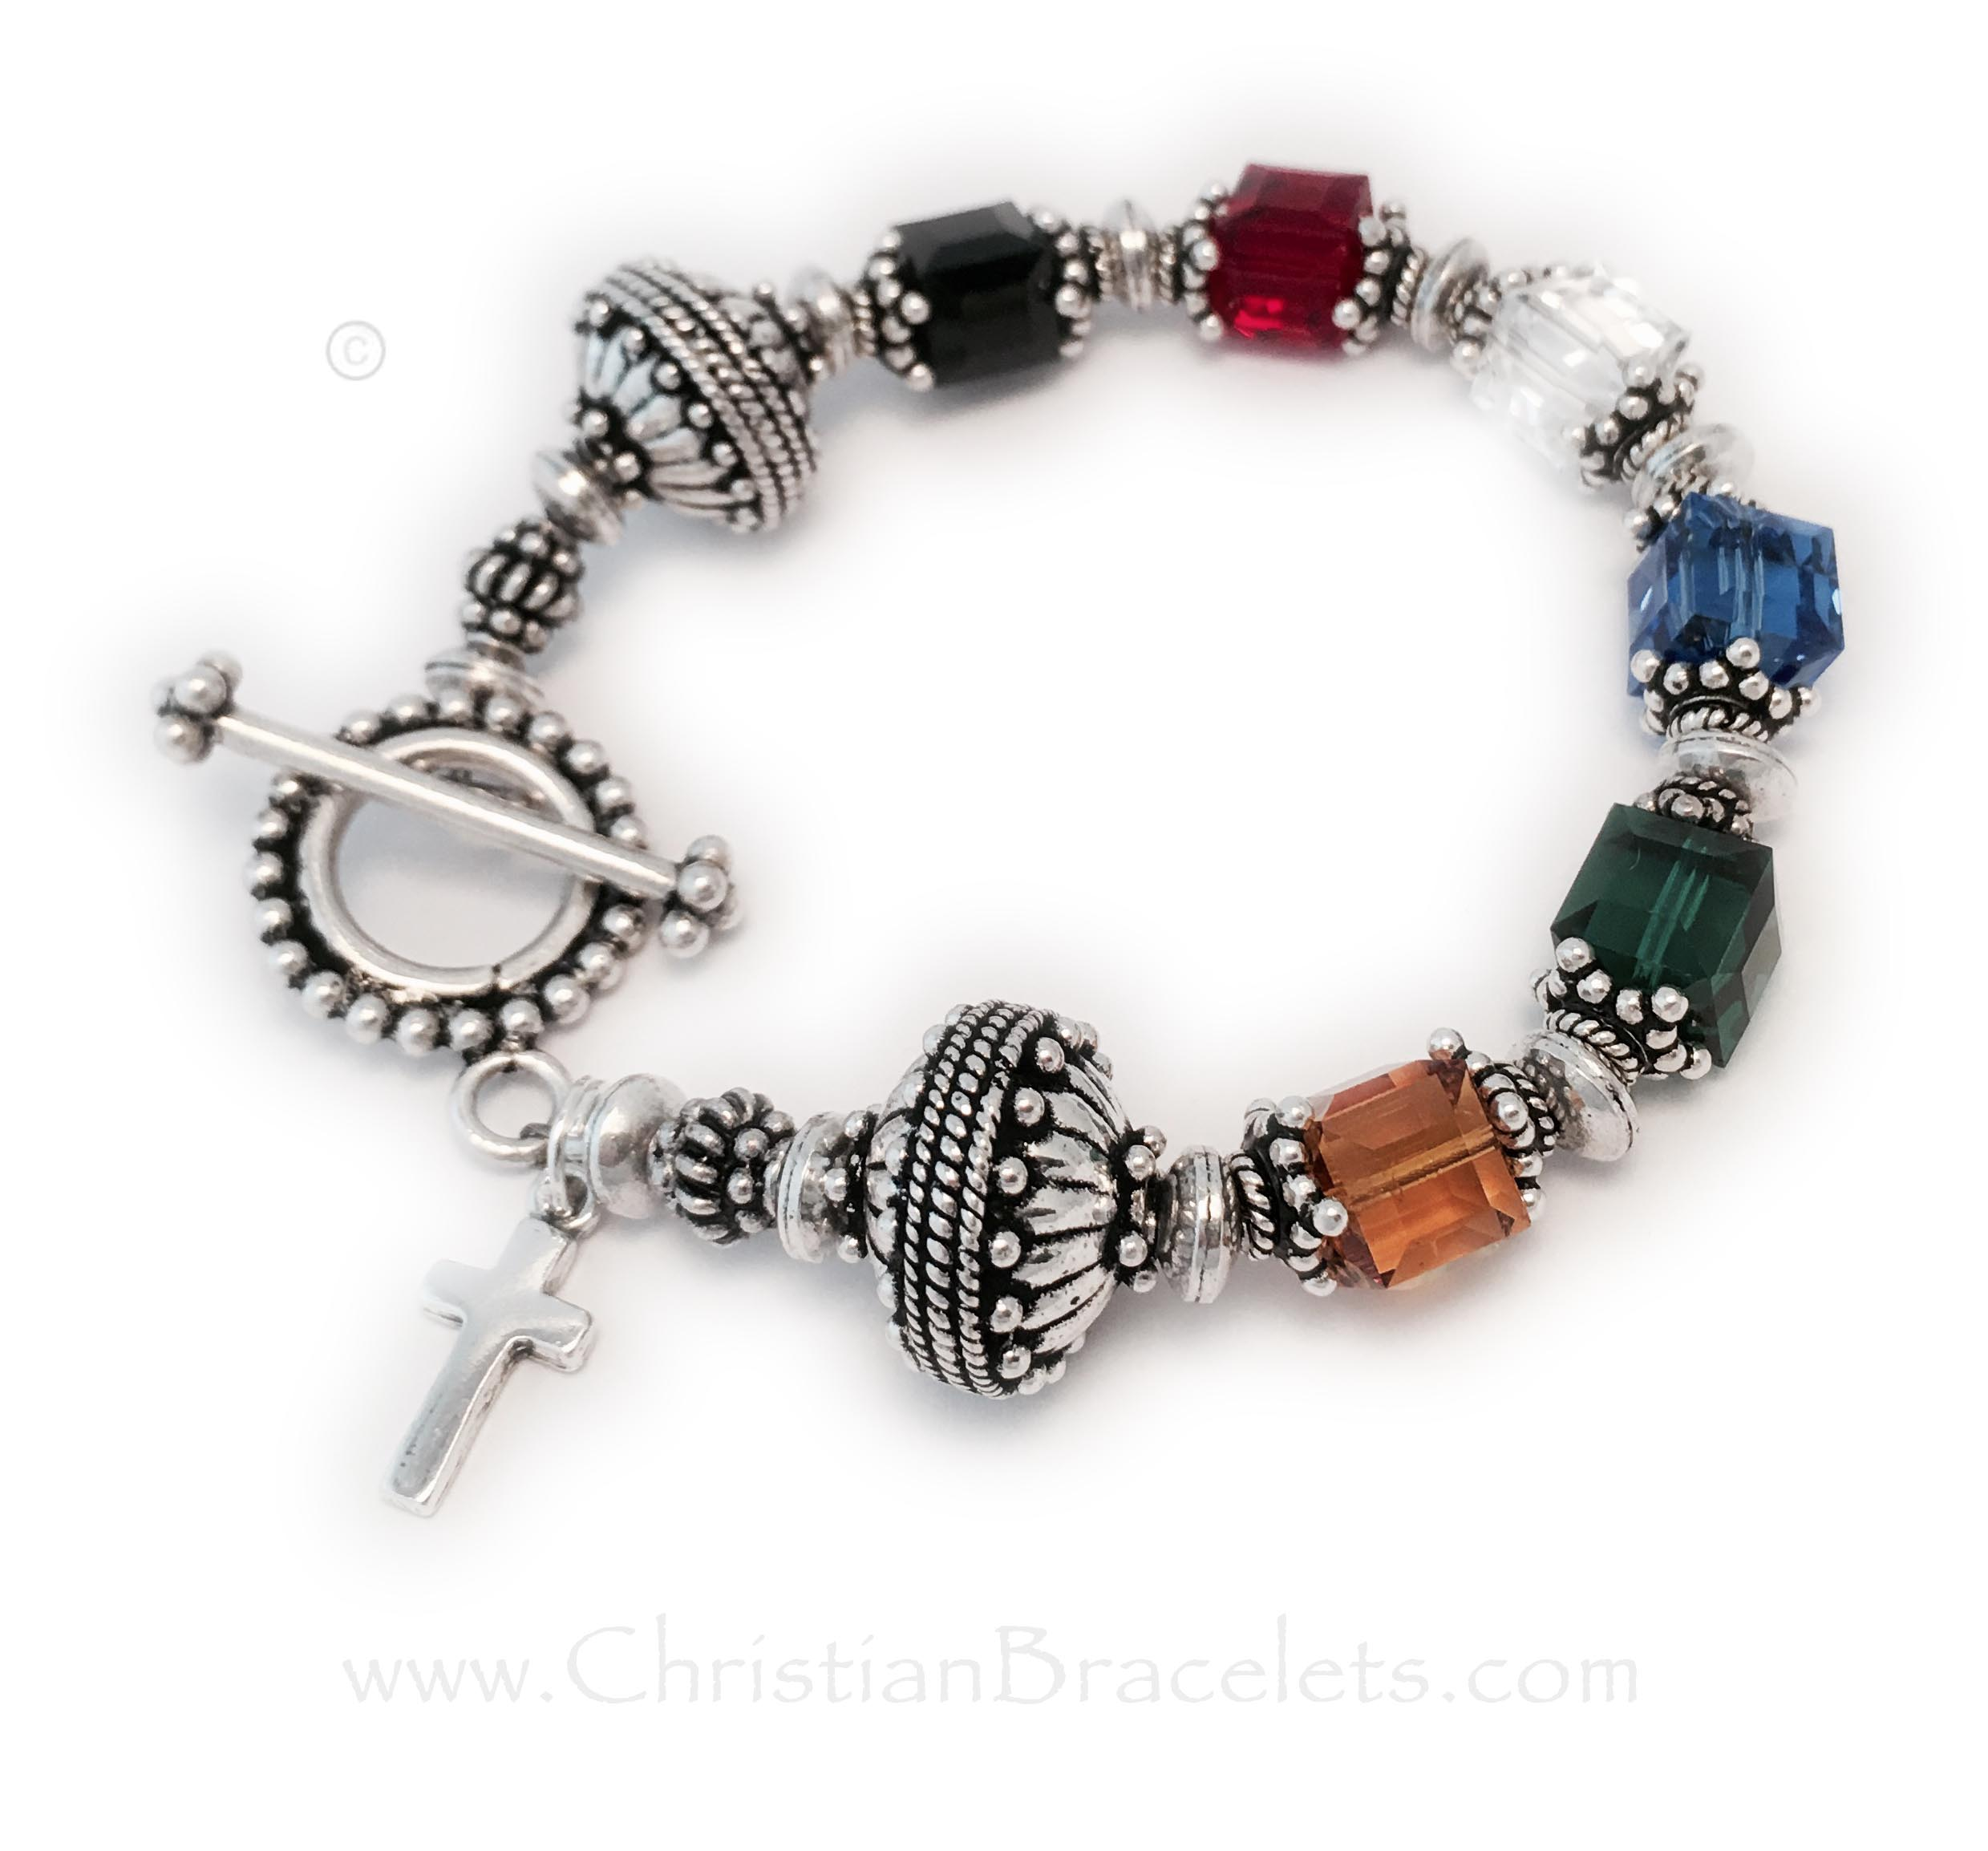 This Big Bali Salvation Bracelet #2 is shown with an upgraded Beaded Toggle Clasp and they added a Simple Cross Charm.